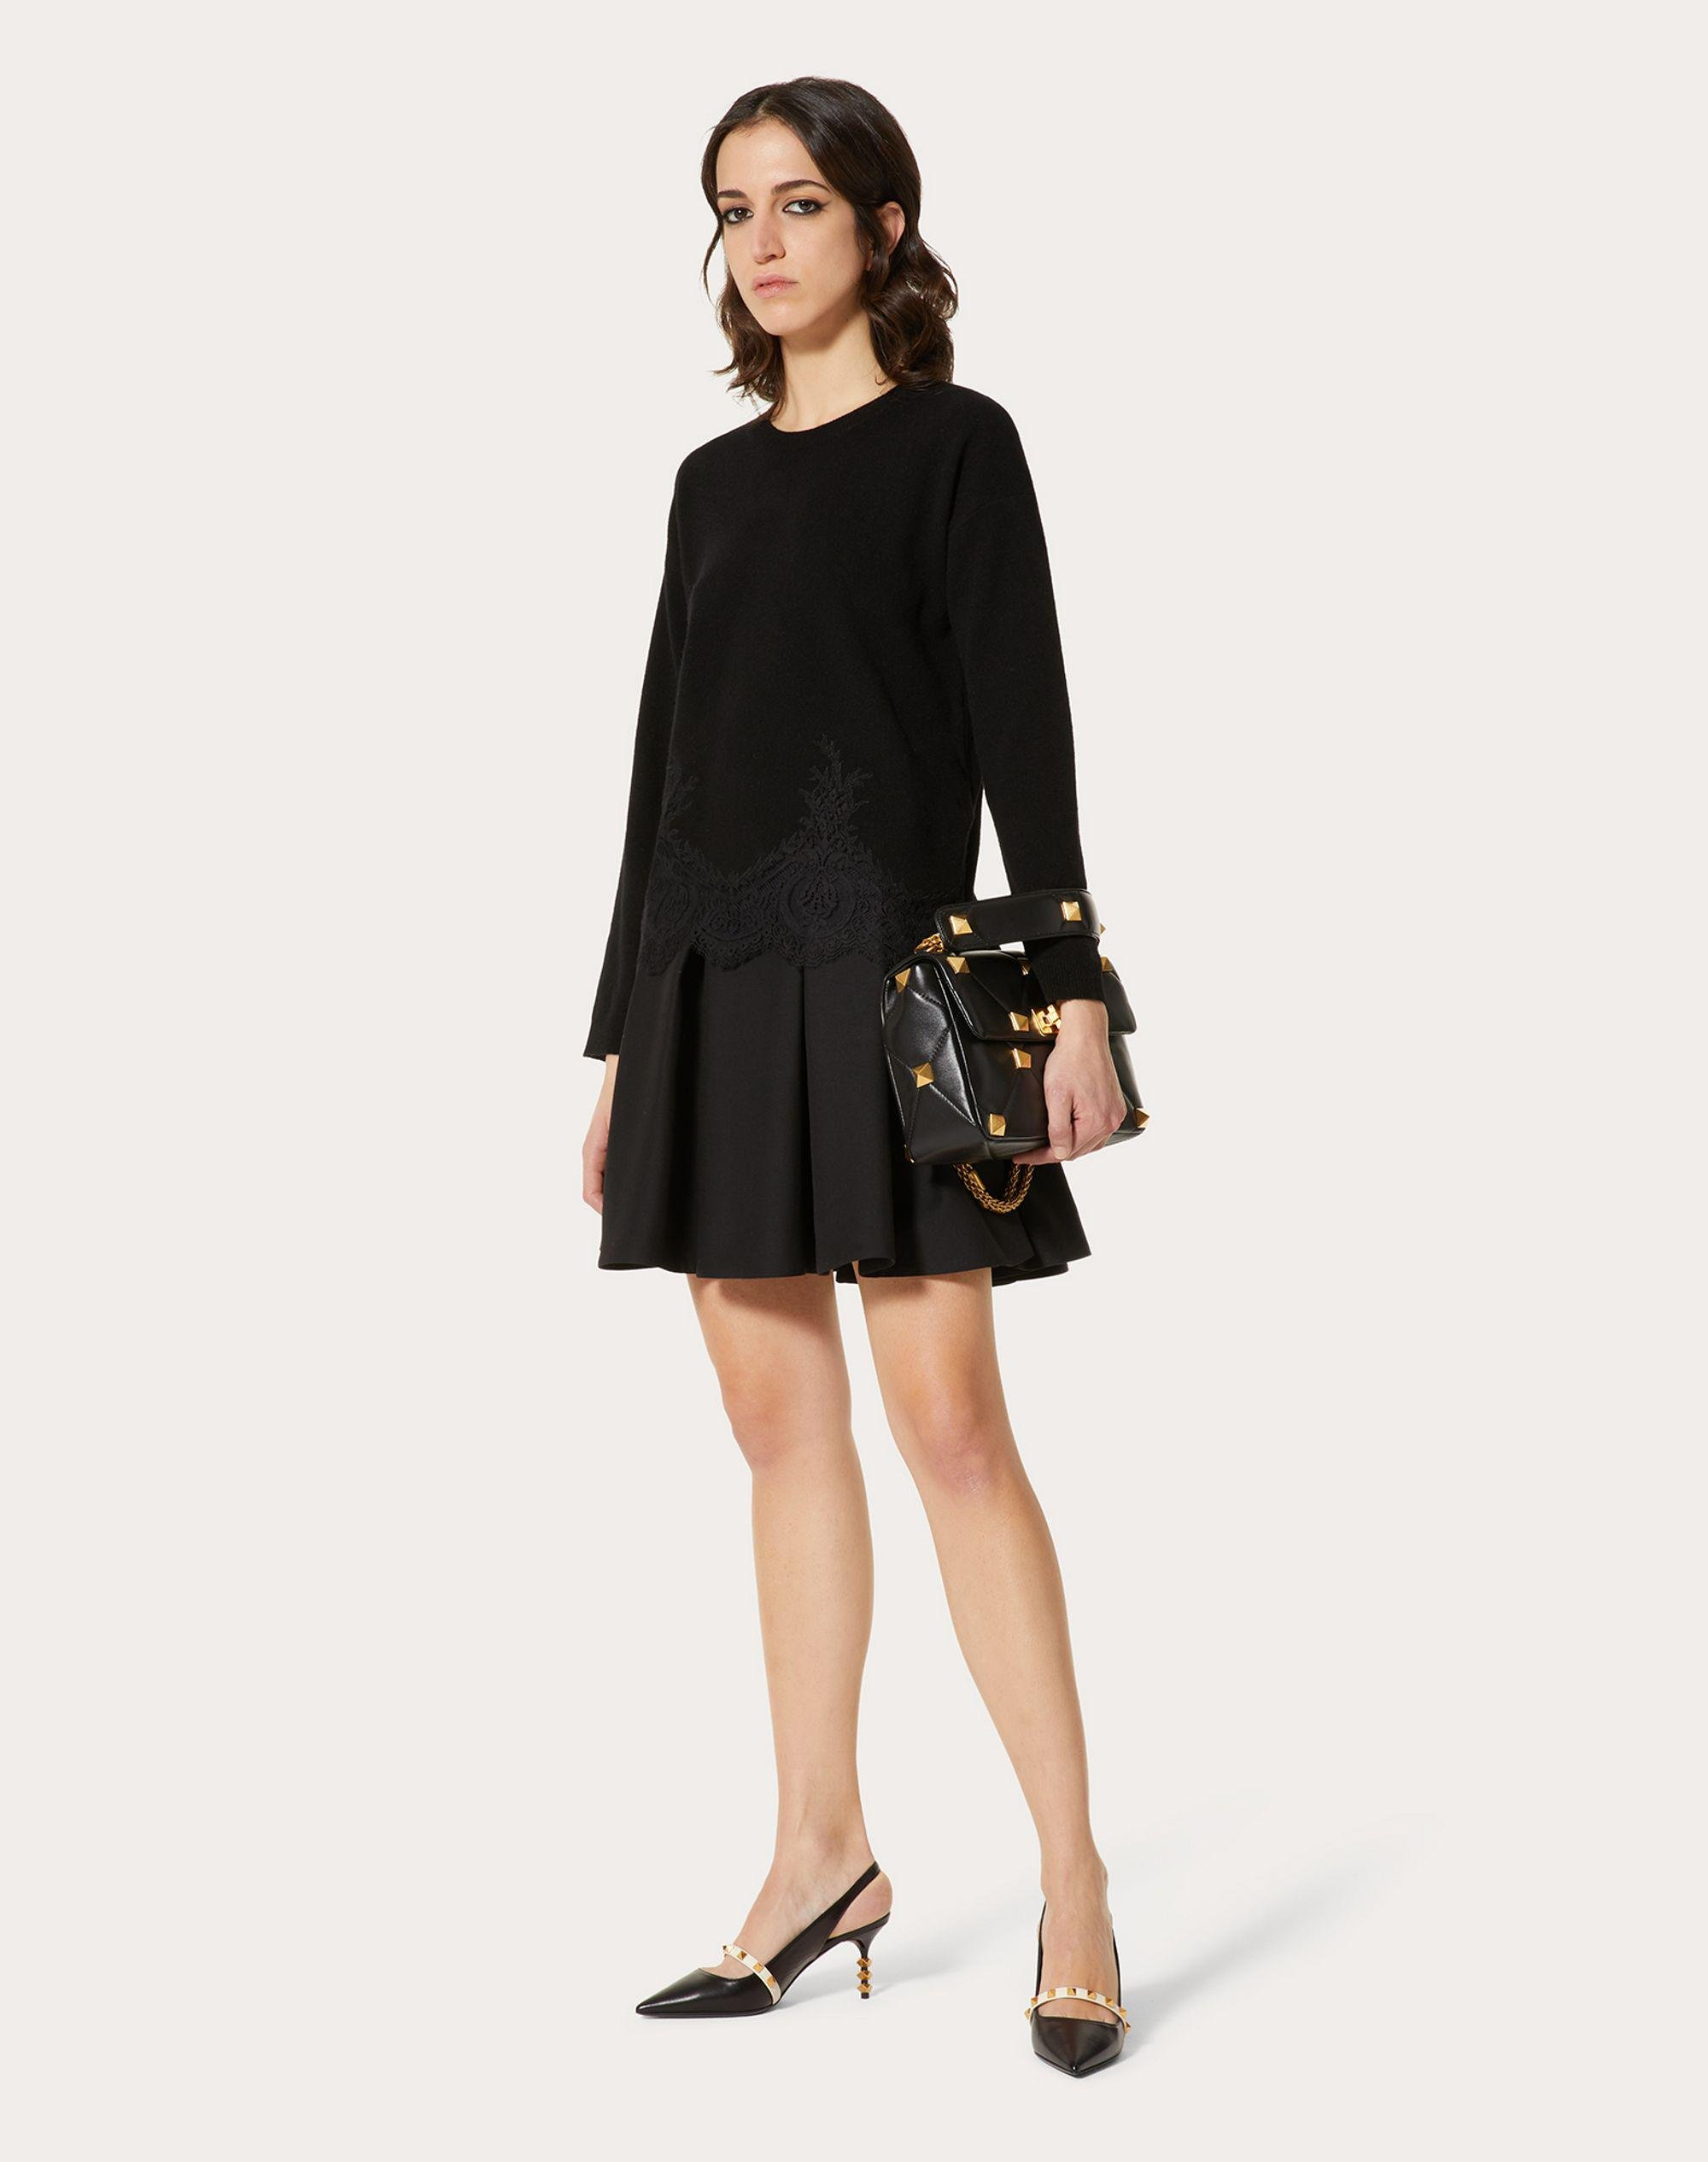 CASHMERE WOOL AND LACE SWEATER